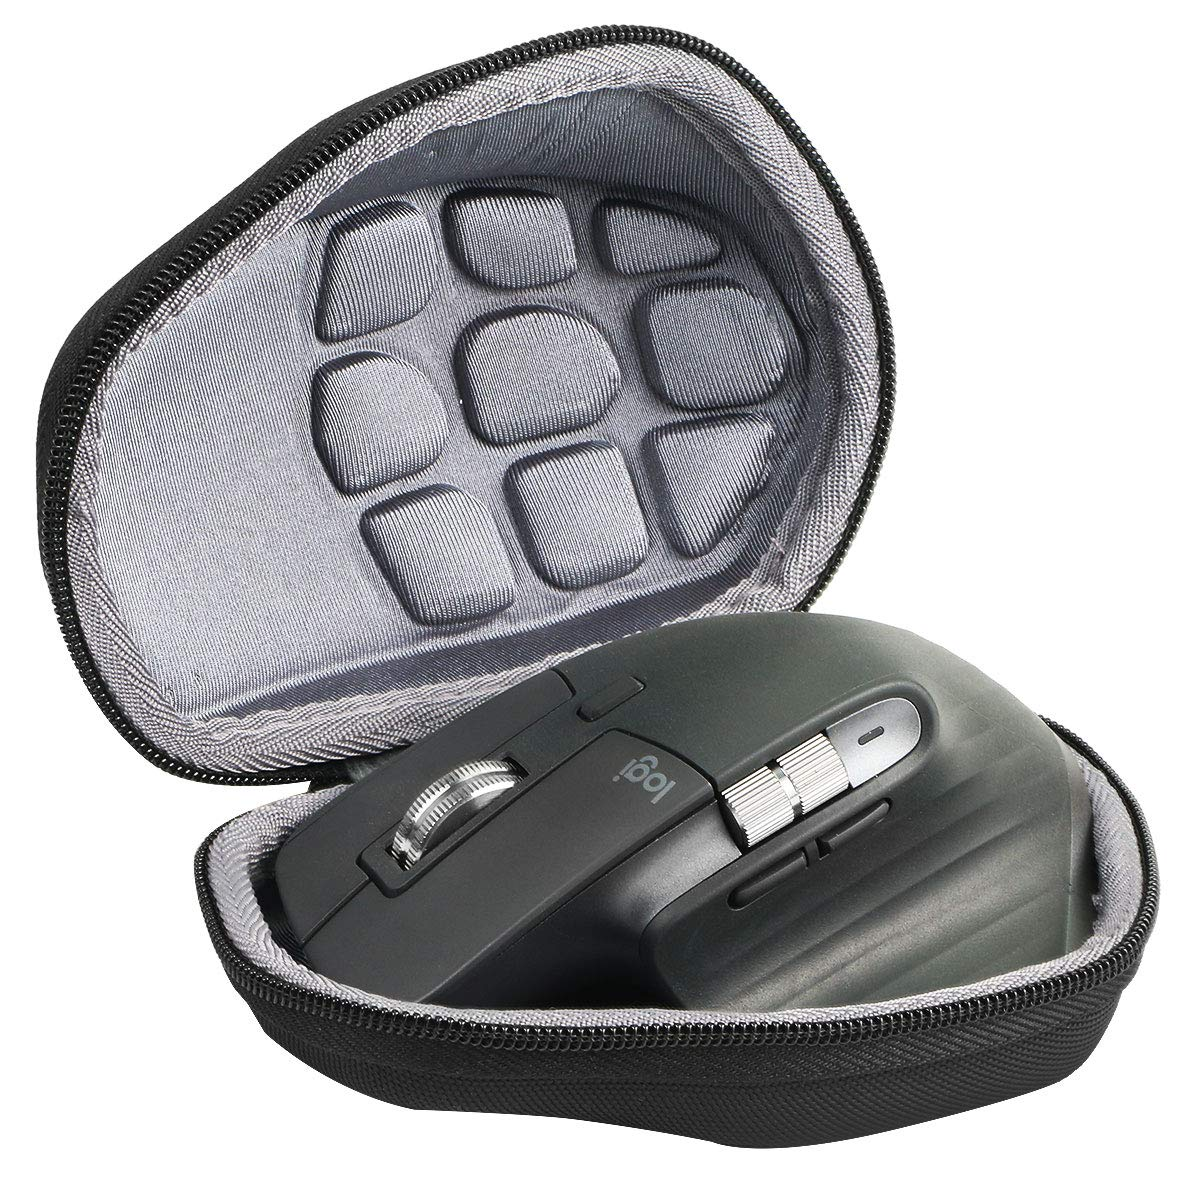 co2crea Hard Travel Case Replacment for Logitech MX Master / Master 2S Advanced Wireless Mouse (Black Case)